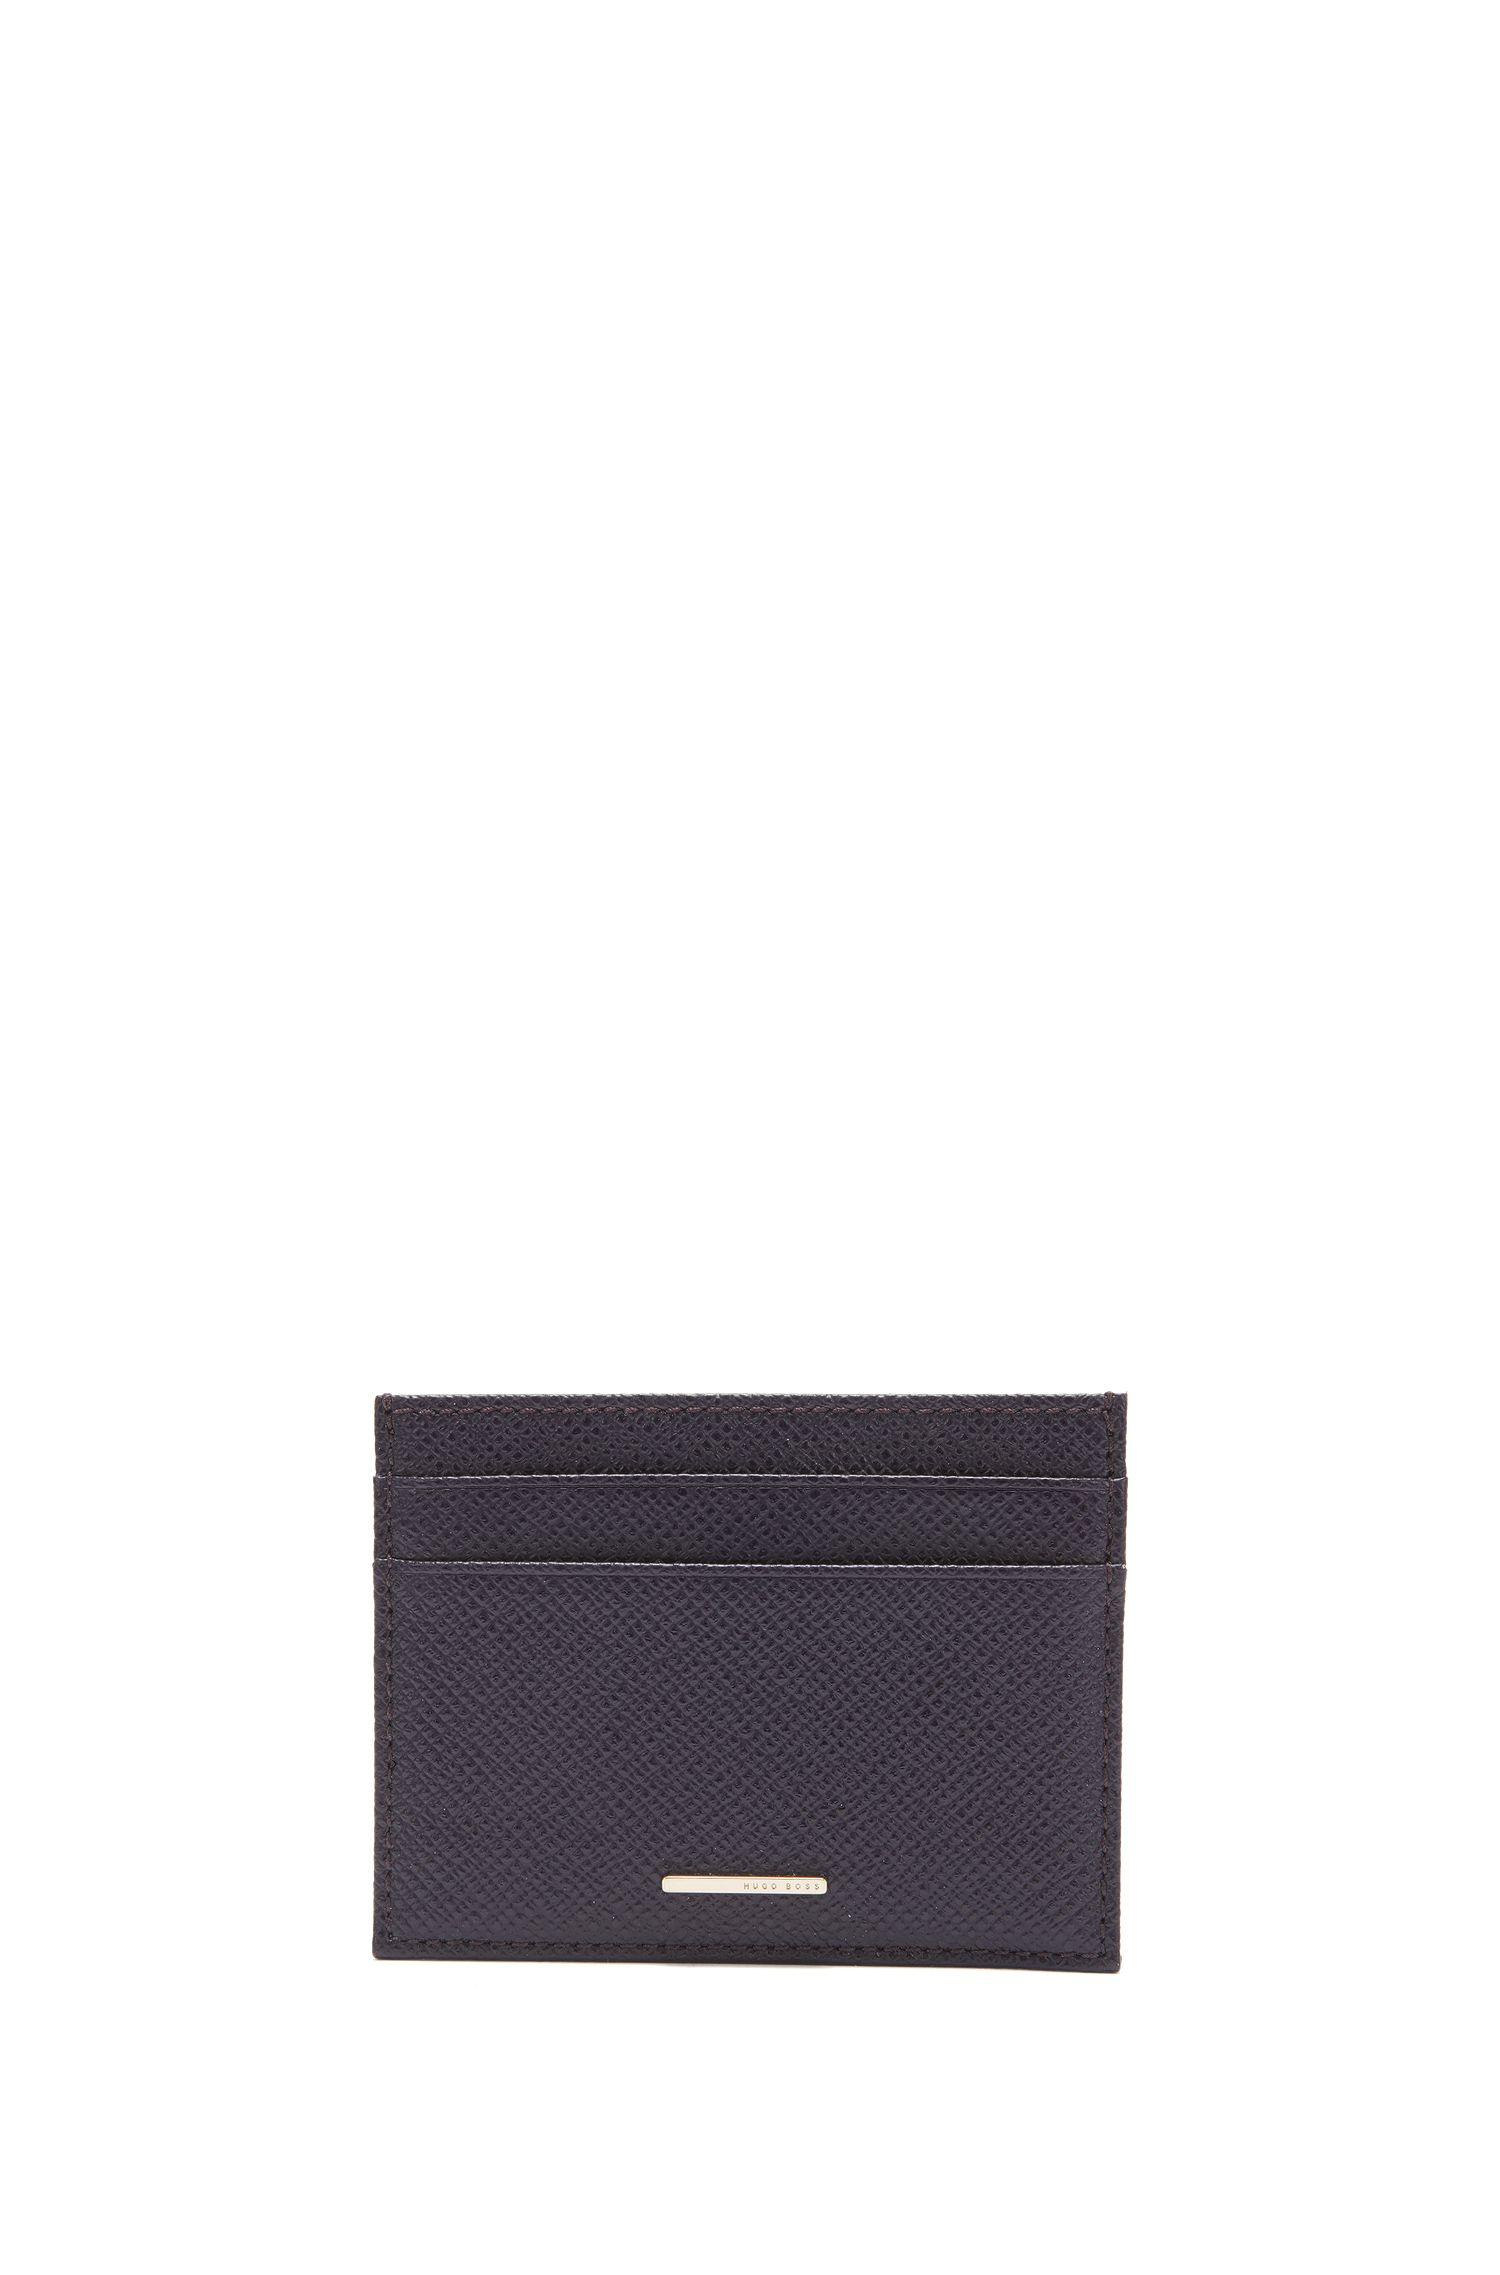 BOSS Luxury Staple card holder in leather